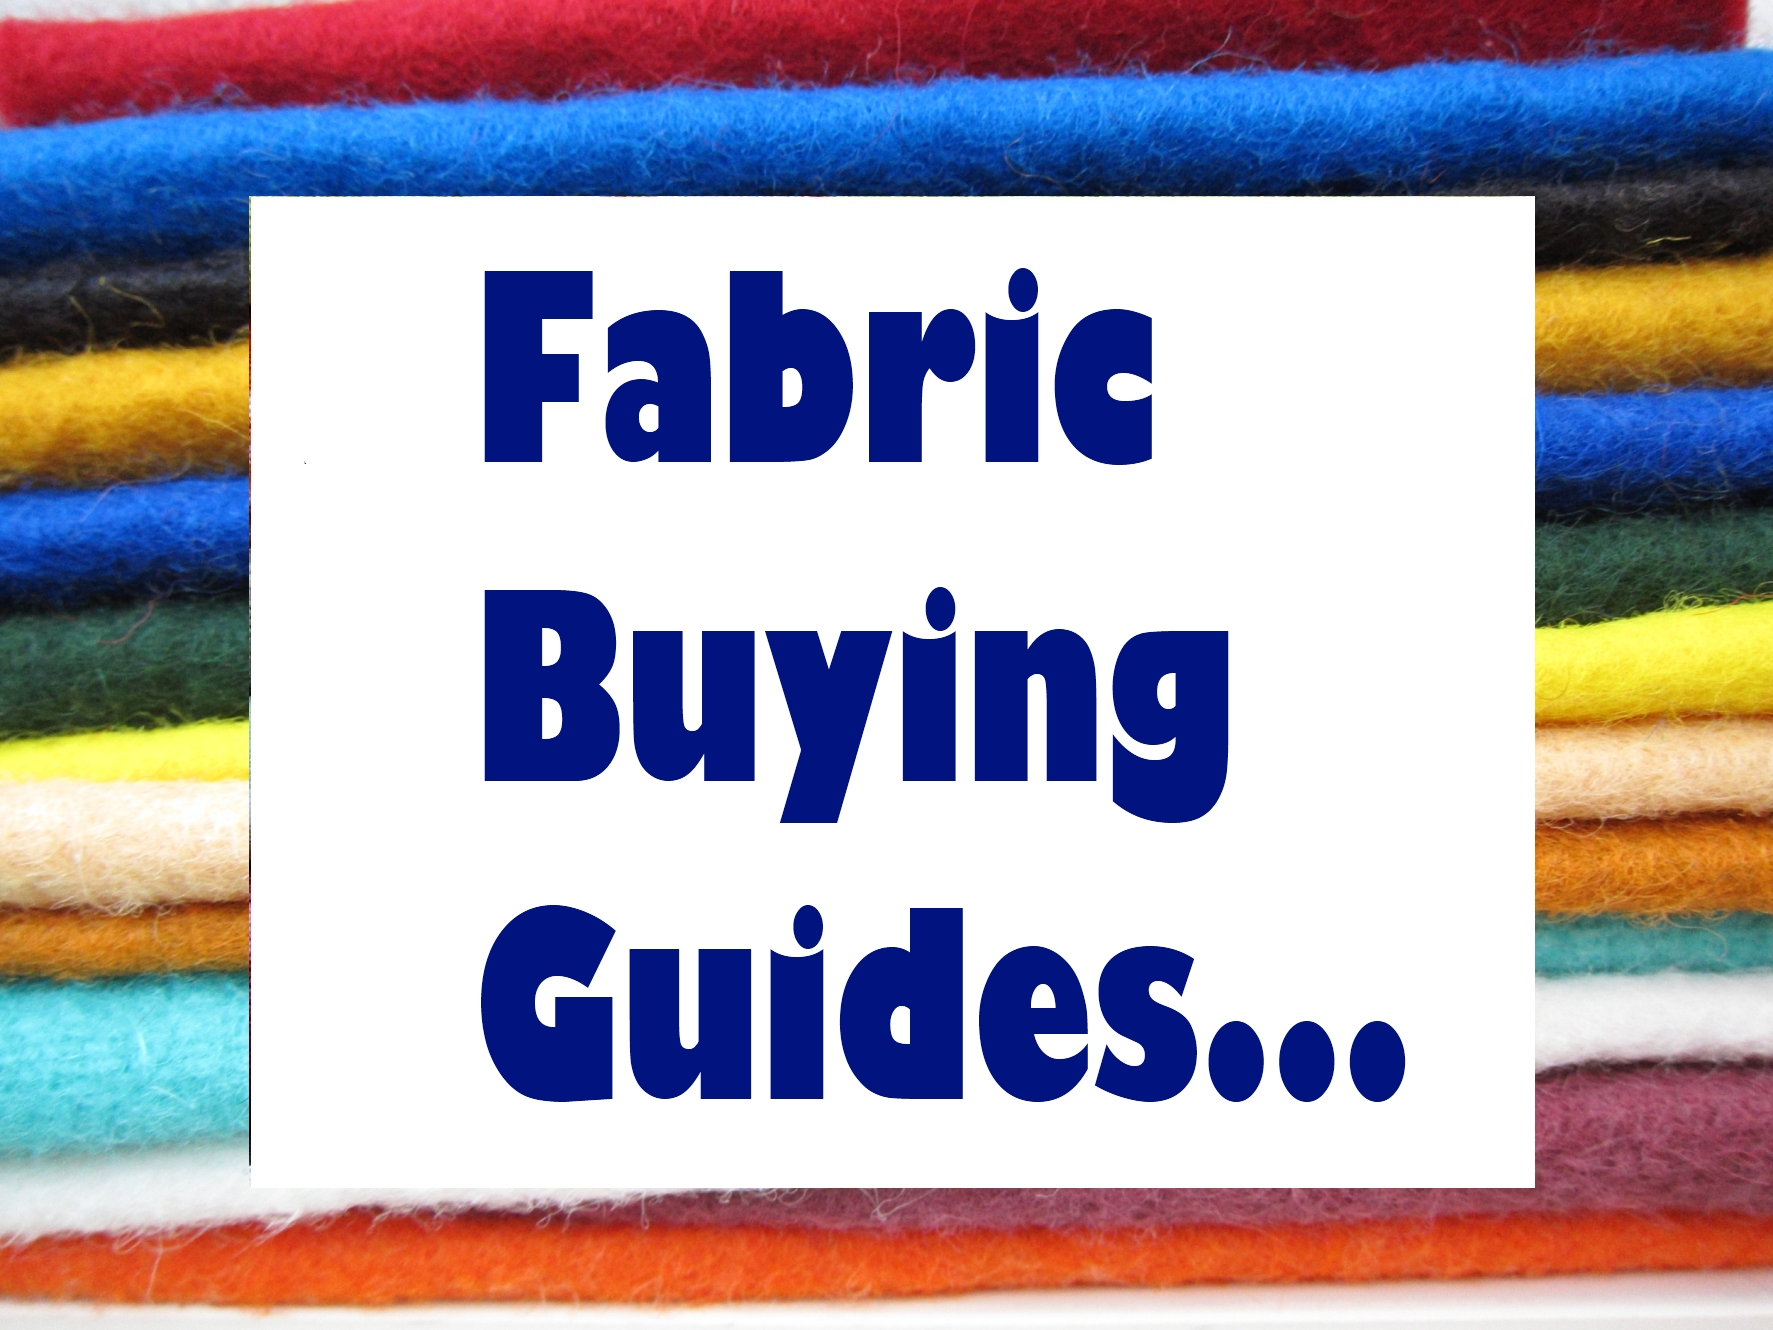 fabric buying guide logo